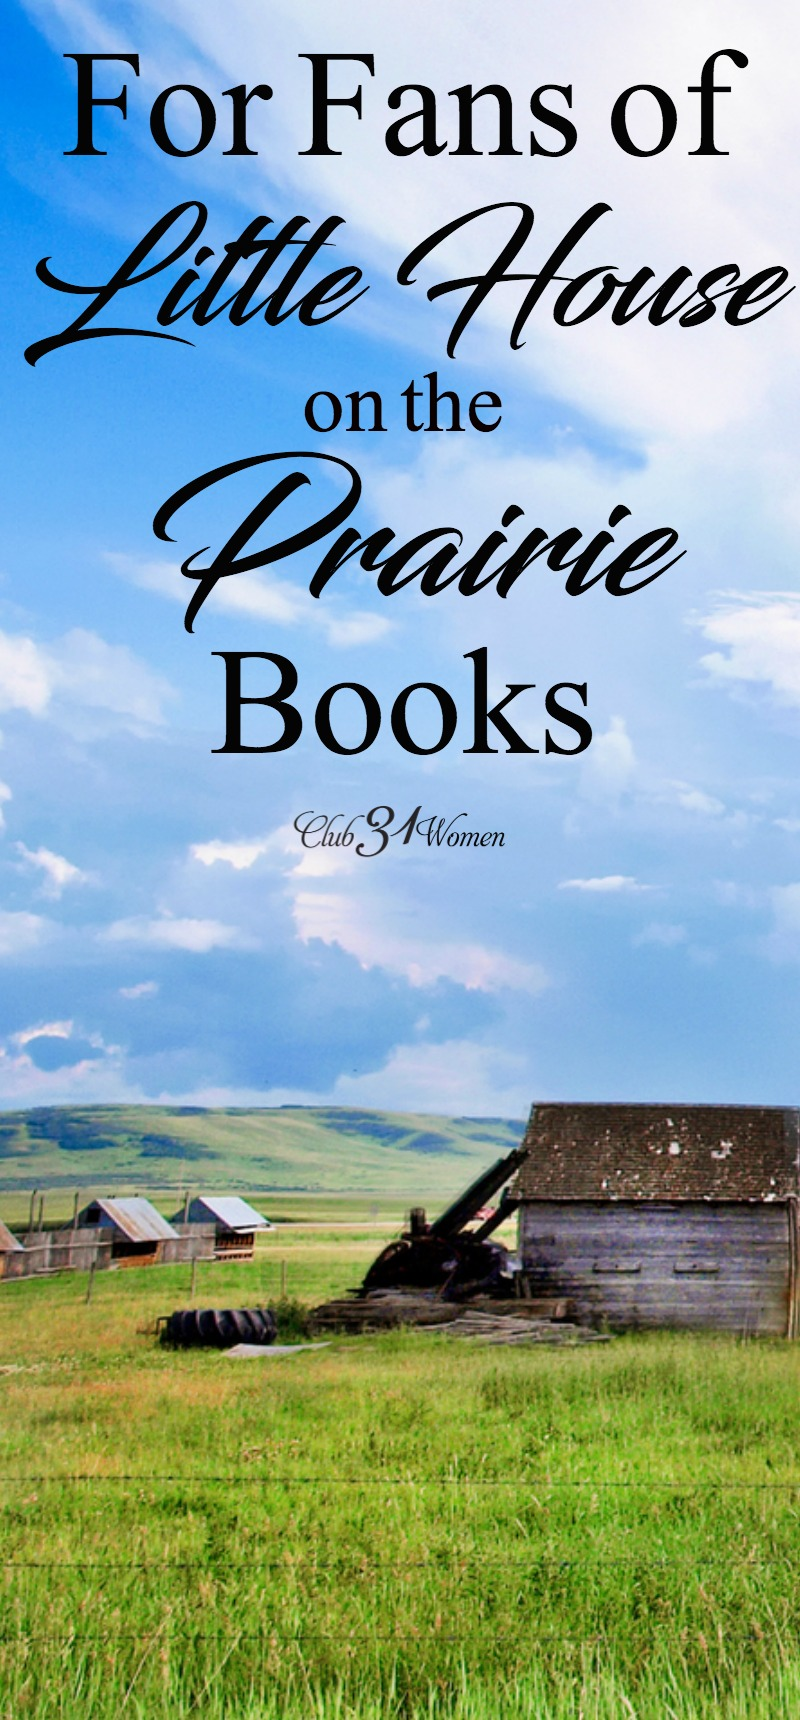 Did you grow up reading the Little House on the Prairie books? If so, check out this list of books for both moms and daughters who are captivated by the adventures of Laura Ingalls Wilder and her family! via @Club31Women